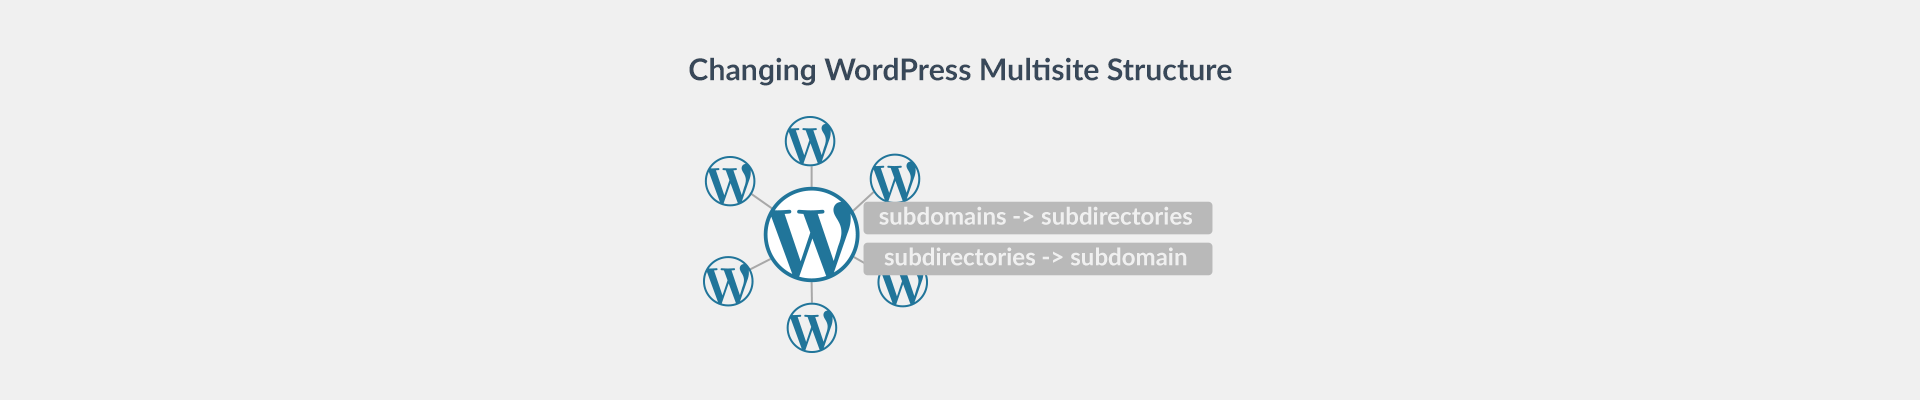 WordPress Multisite Structure Change